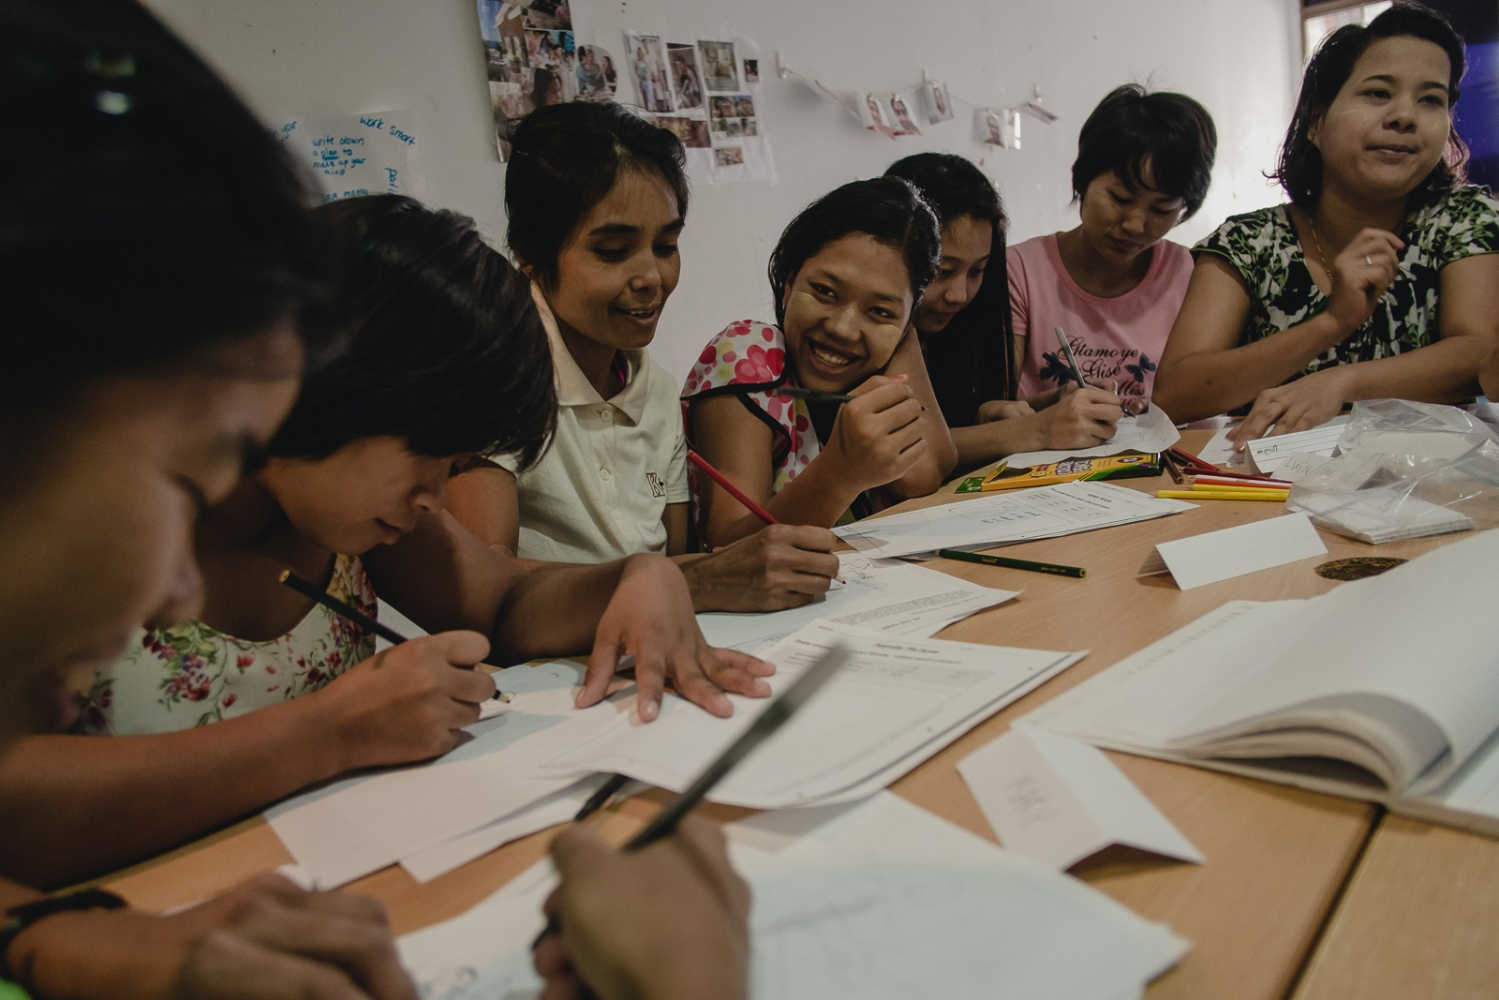 Foreign domestic workers take an english language course while housed at a shelter run by The Humanitarian Organisation for Migration Economics (HOME), an organisation that provides direct assistance to men and women migrants and victims of human trafficking and forced labour. Abuse of domestic workers ranges from physical and verbal abuse, sexual assault, punative action for perceived wrongs, violation of contracted rights and witheld pay. As Foreign domestic workers in Singapore are required by law to live with their employer, many who suffer abuses feel they have no choice but to run away and seek shelter with their embassy or NGOs such as HOME.